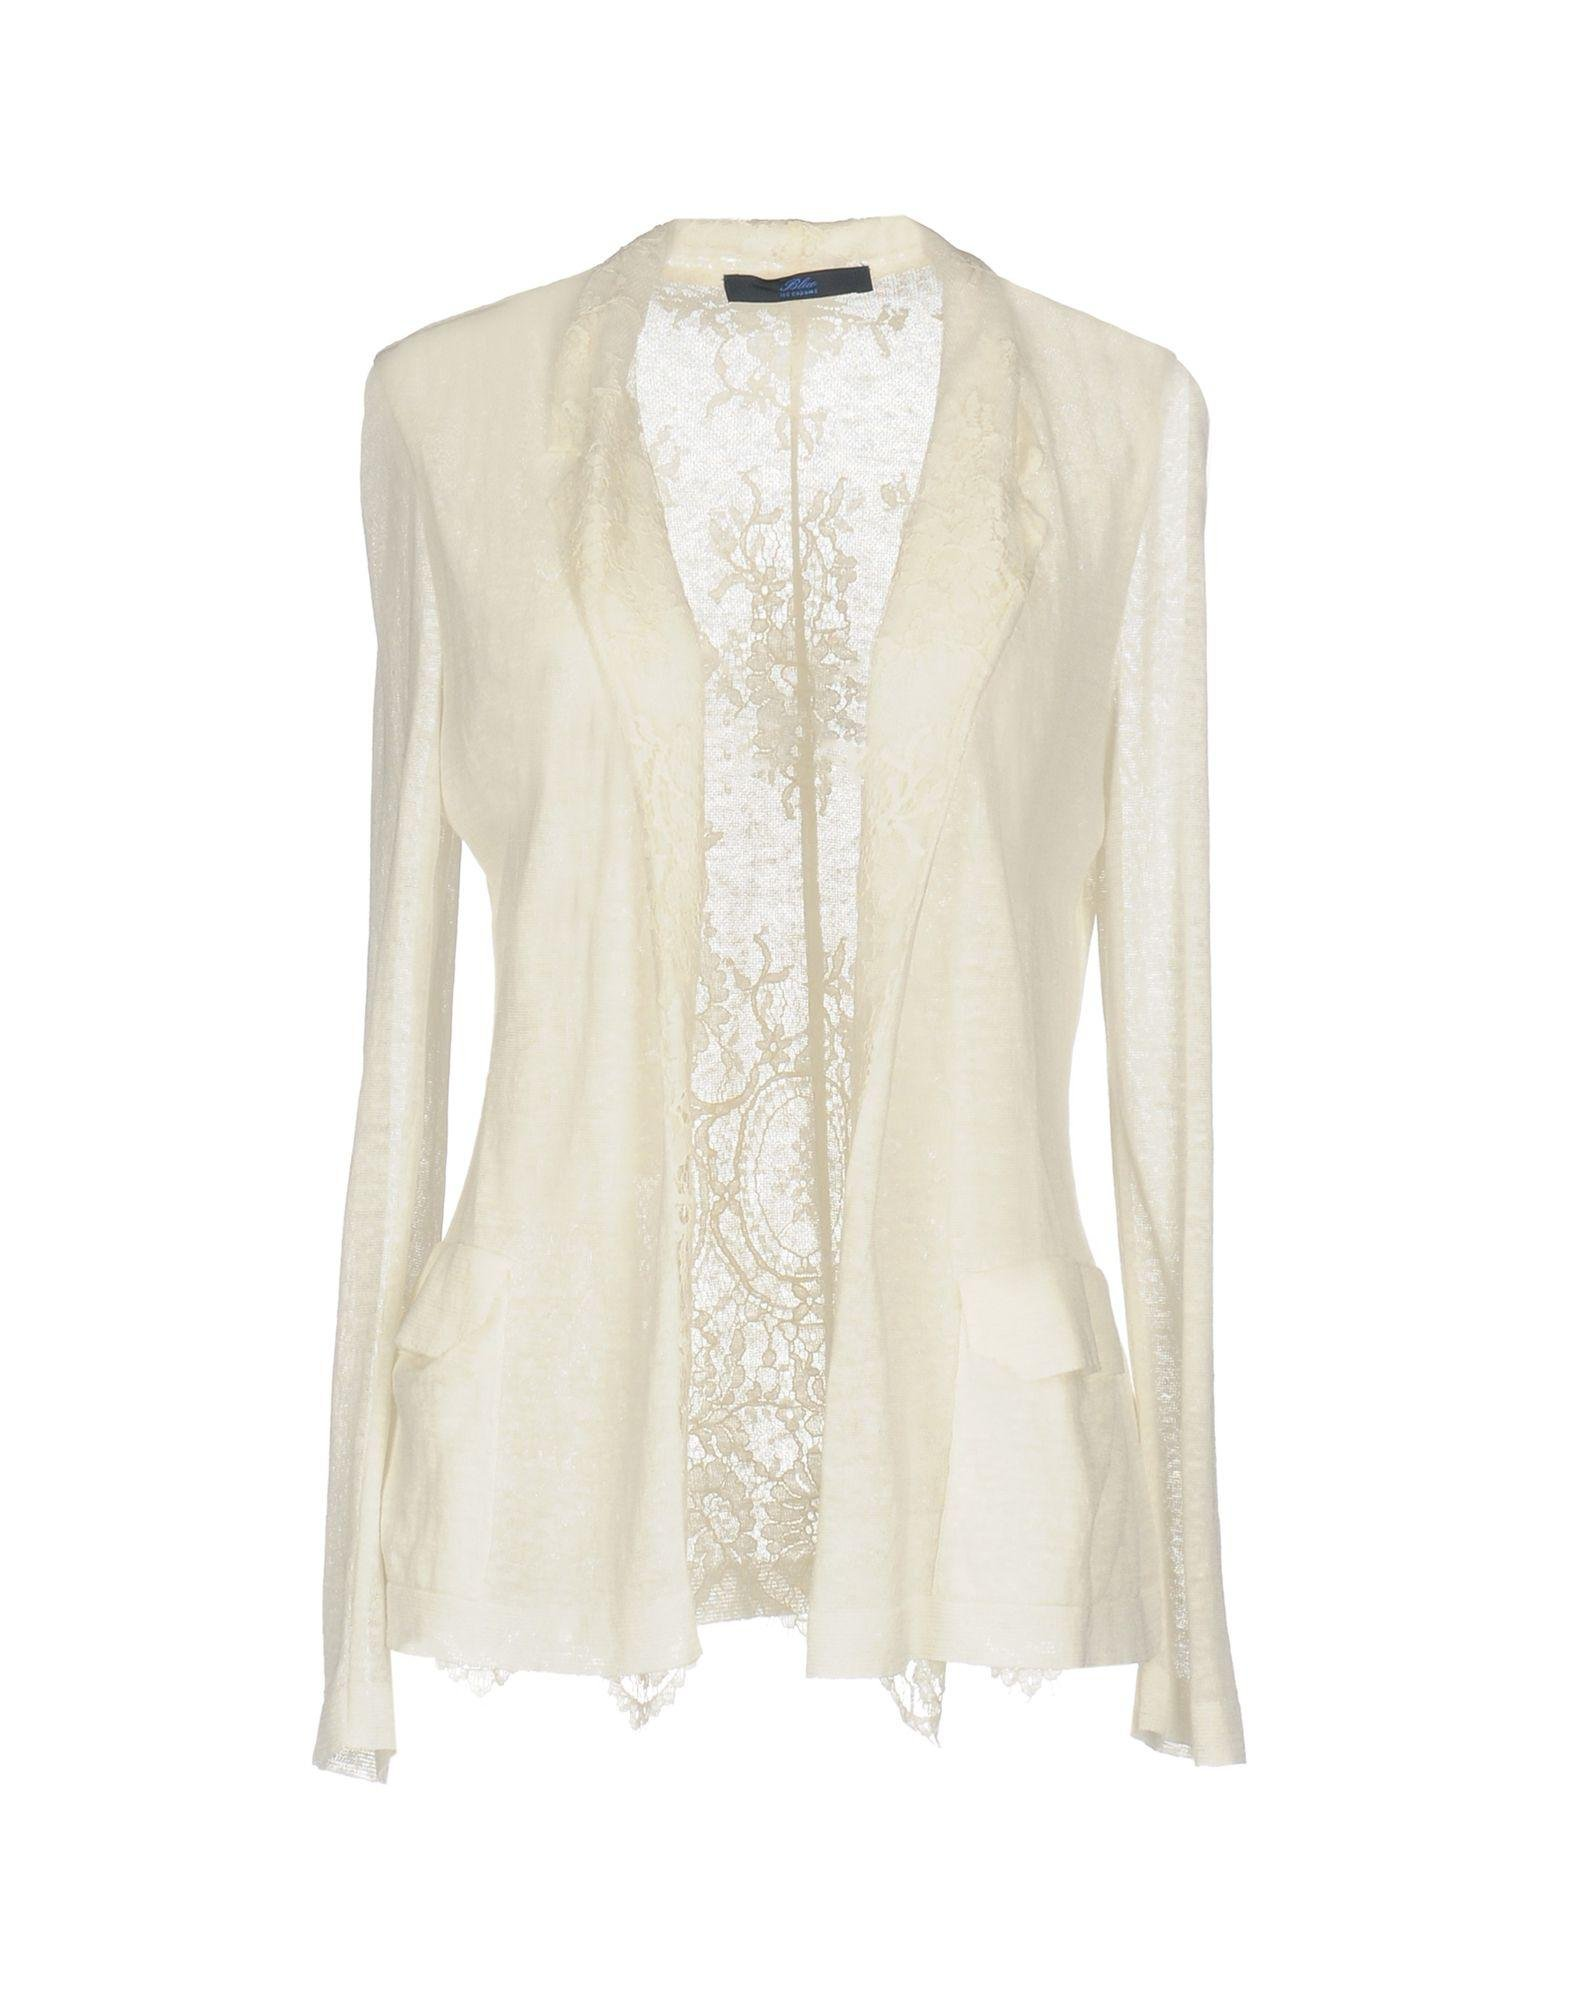 b248fdfe20c50 Lyst - Les Copains Cardigan in White